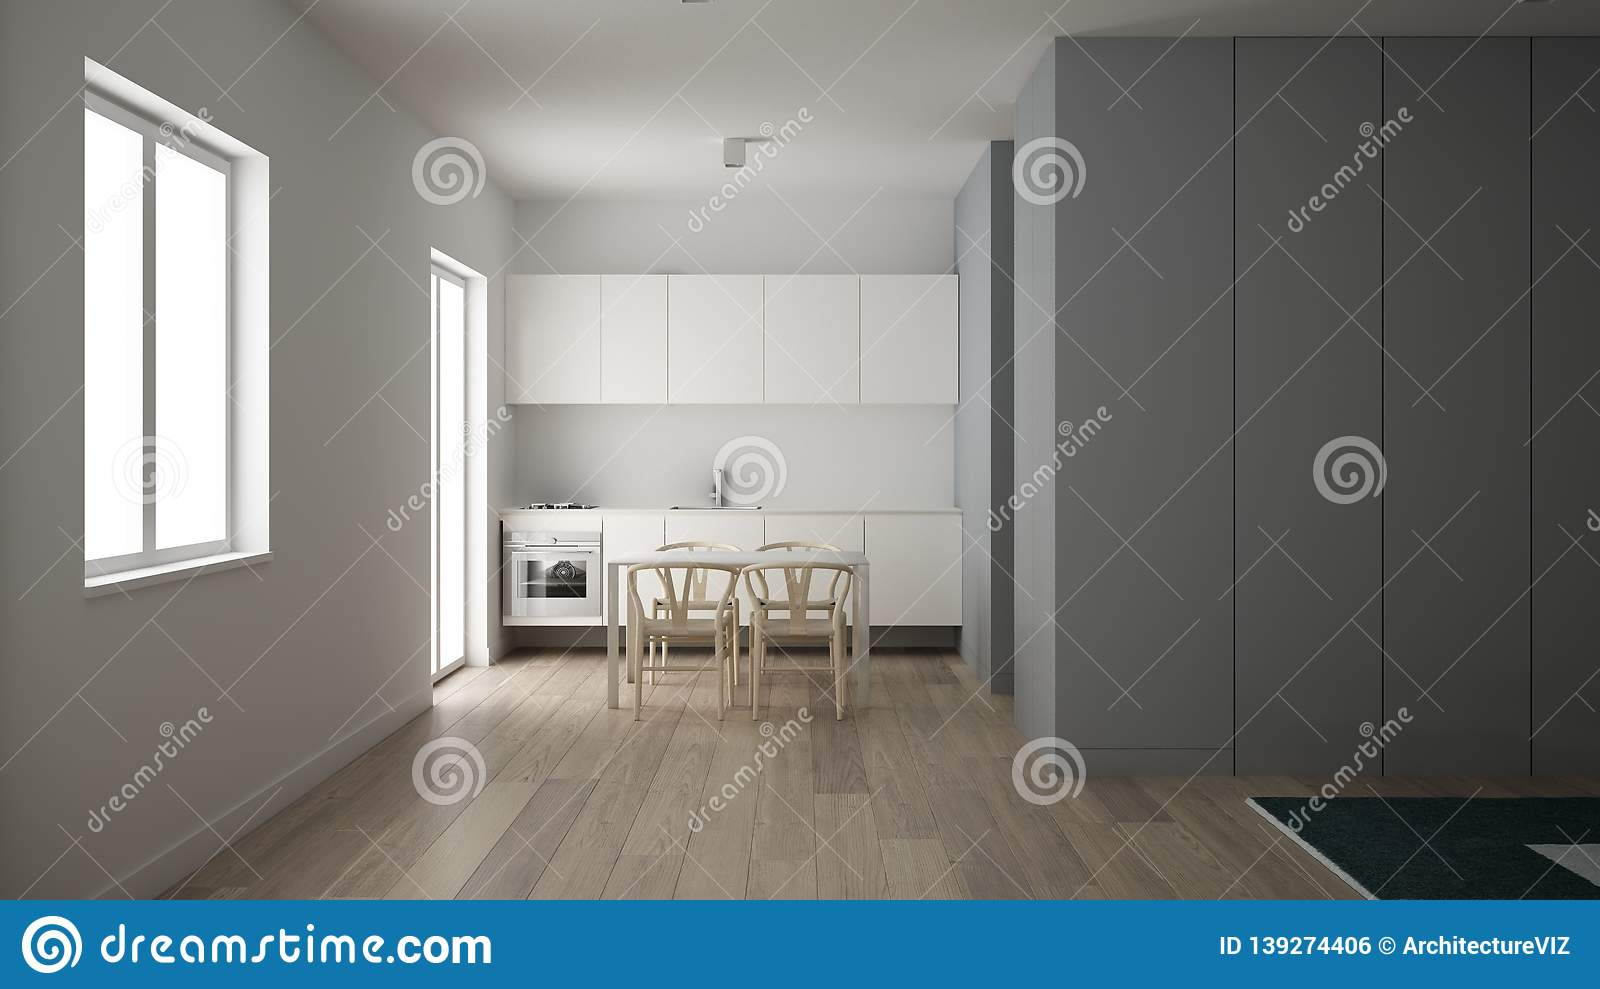 Minimalist Small Kitchen In One Bedroom Apartment Dining Table With Wooden Chairs Parquet Floor White Interior Design Clean Stock Photo Image Of Contemporary Fancy 139274406